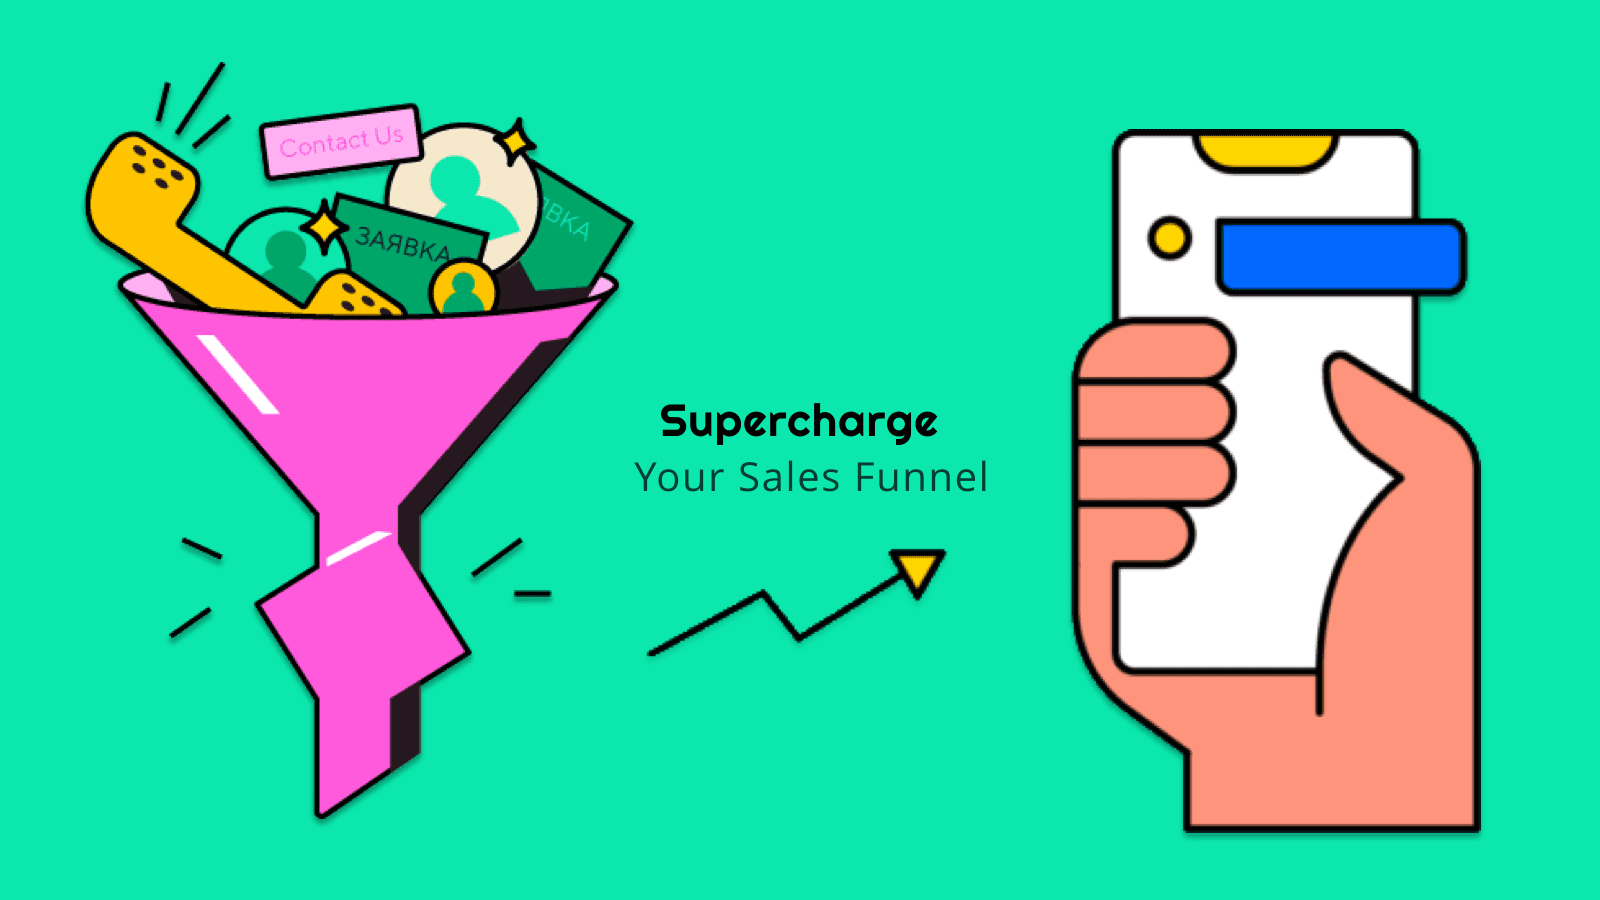 Can AI Chatbots Supercharge Your SalesFunnel